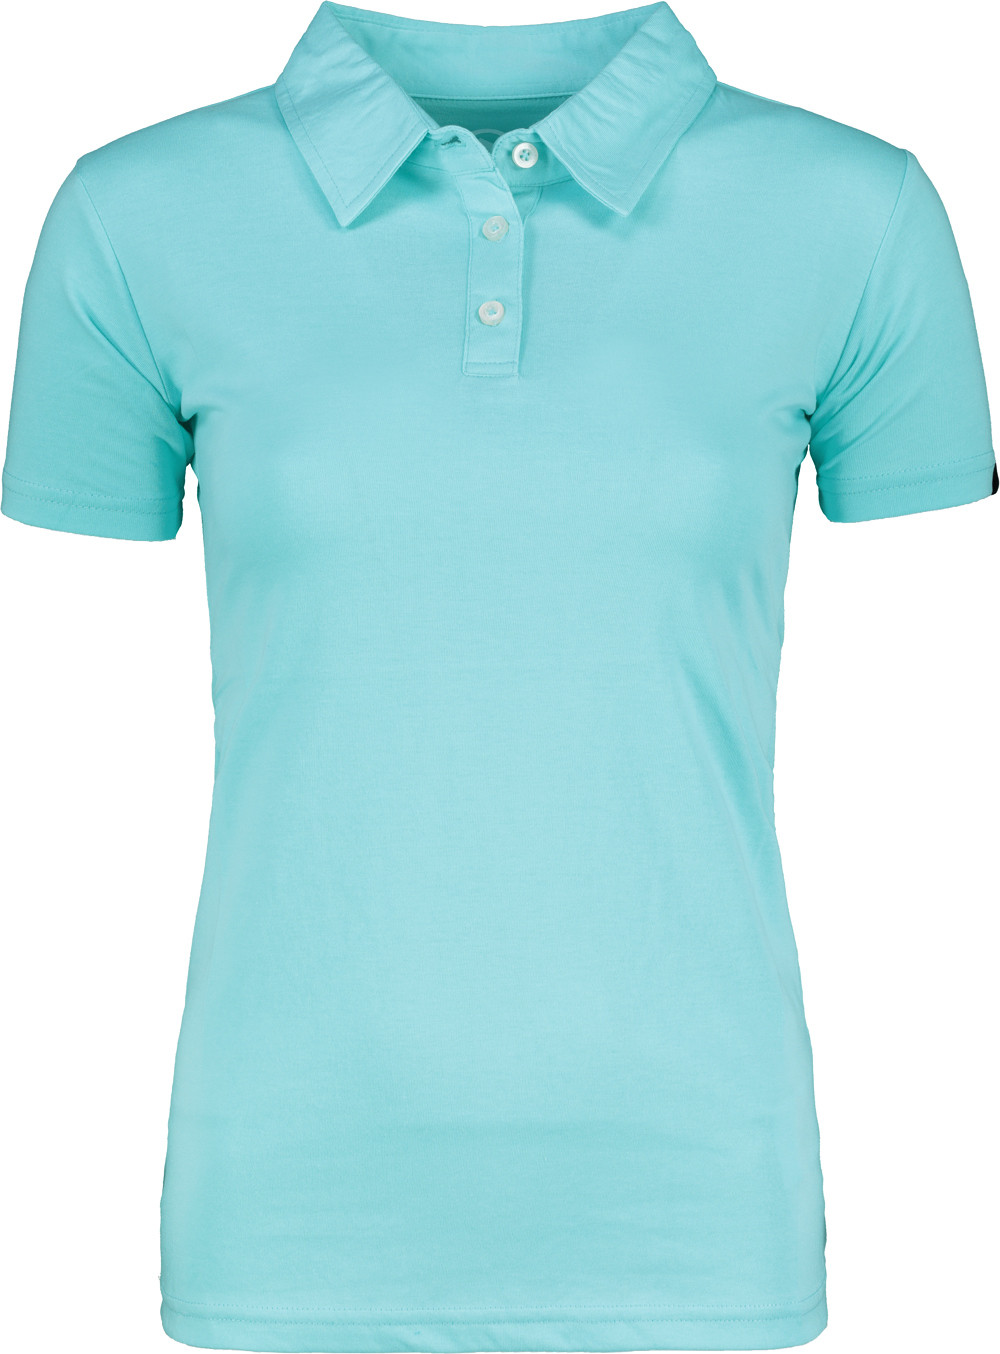 Women's polo shirts NORTHFINDER ASDIA